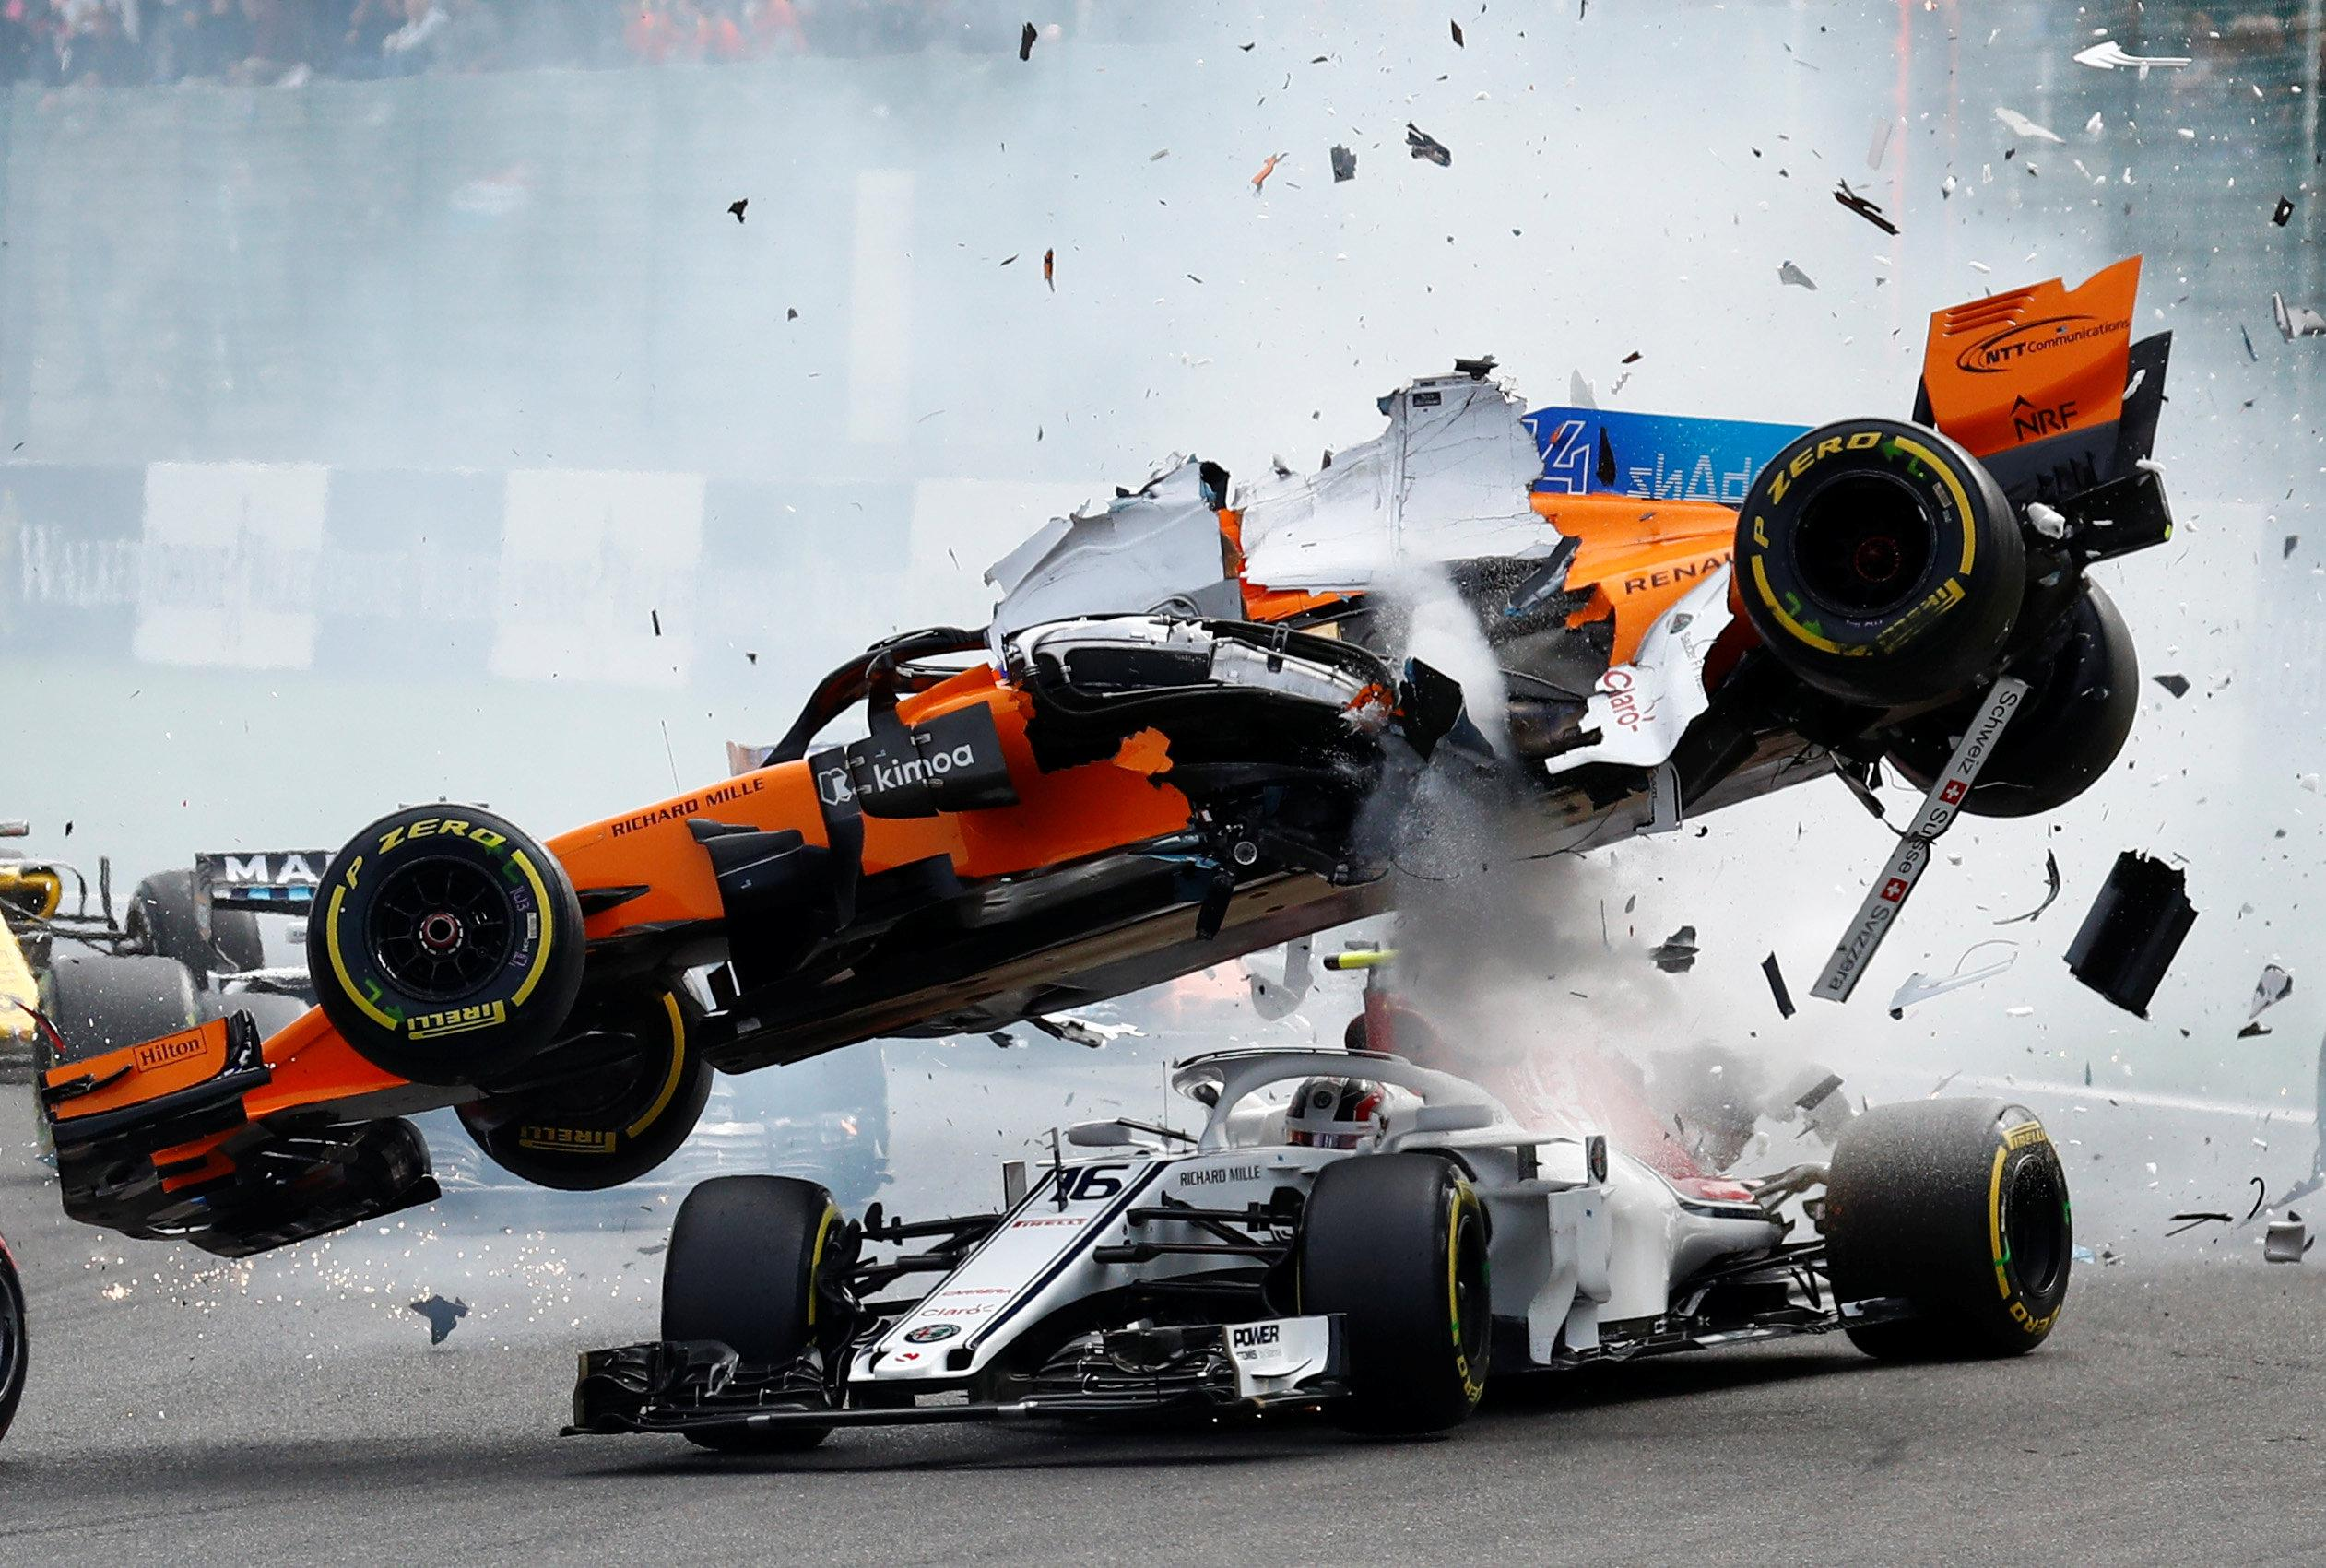 Fernando Alonso was thrown in the air after being hit by Nico Hulkenburg